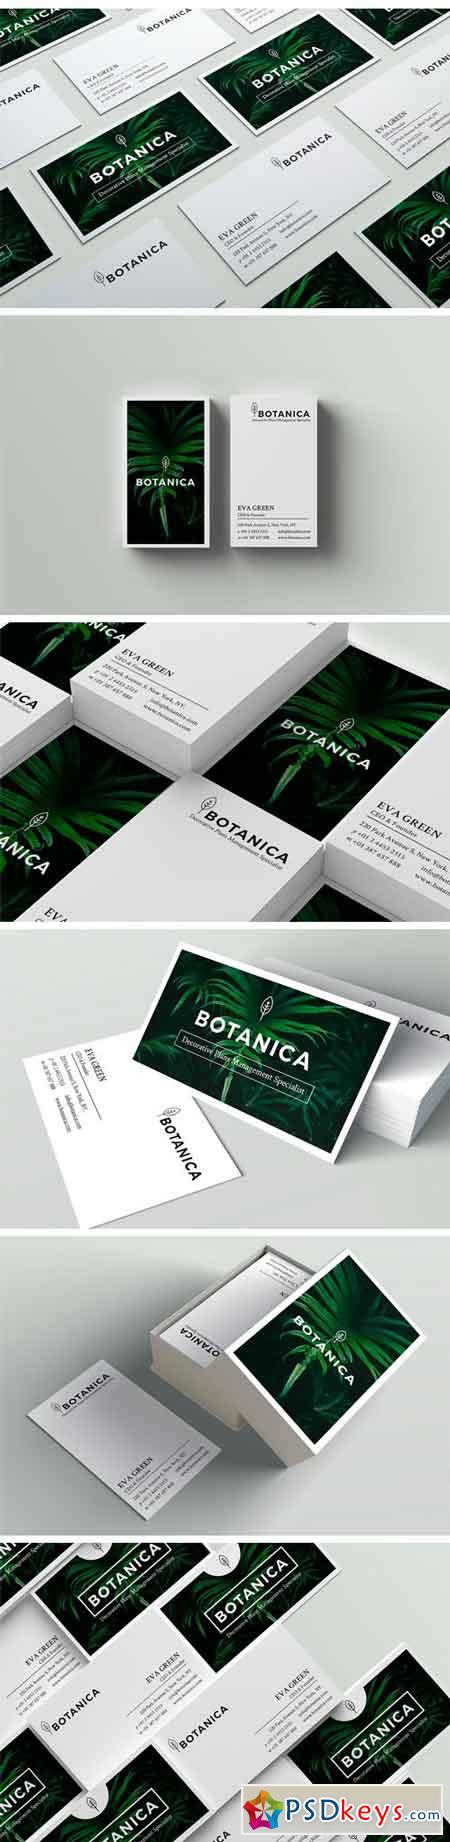 BOTANICA Business Card Template 1682296